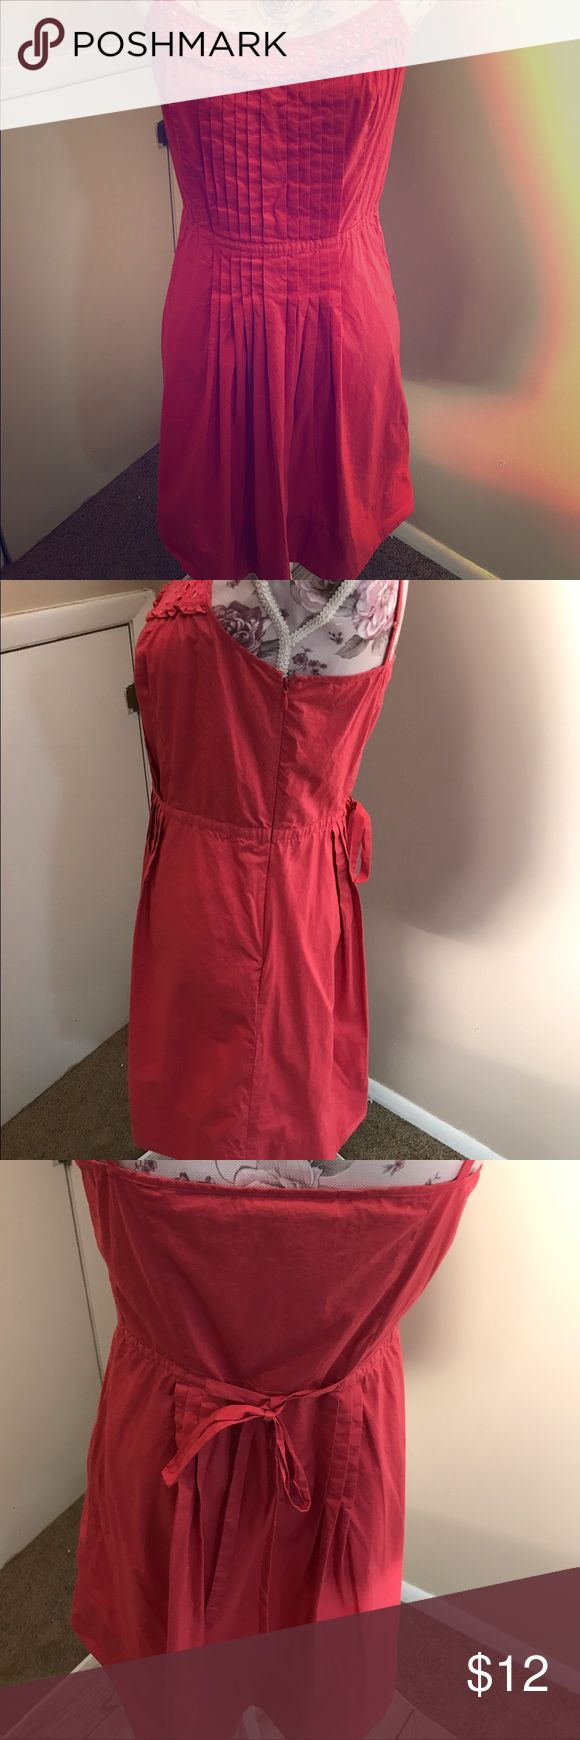 Anne Taylor Loft Sundress Size 6 This Classic Spaghetti Strap Sundress From Anne Taylor is Beautiful,Pleats Down The Front ,Zipper On The Side  ,Ties In The Back .It Is A Pink /Wine Color .Looks Great With Flip Flops Or Heels - Size 6 Anne Taylor Intimates & Sleepwear